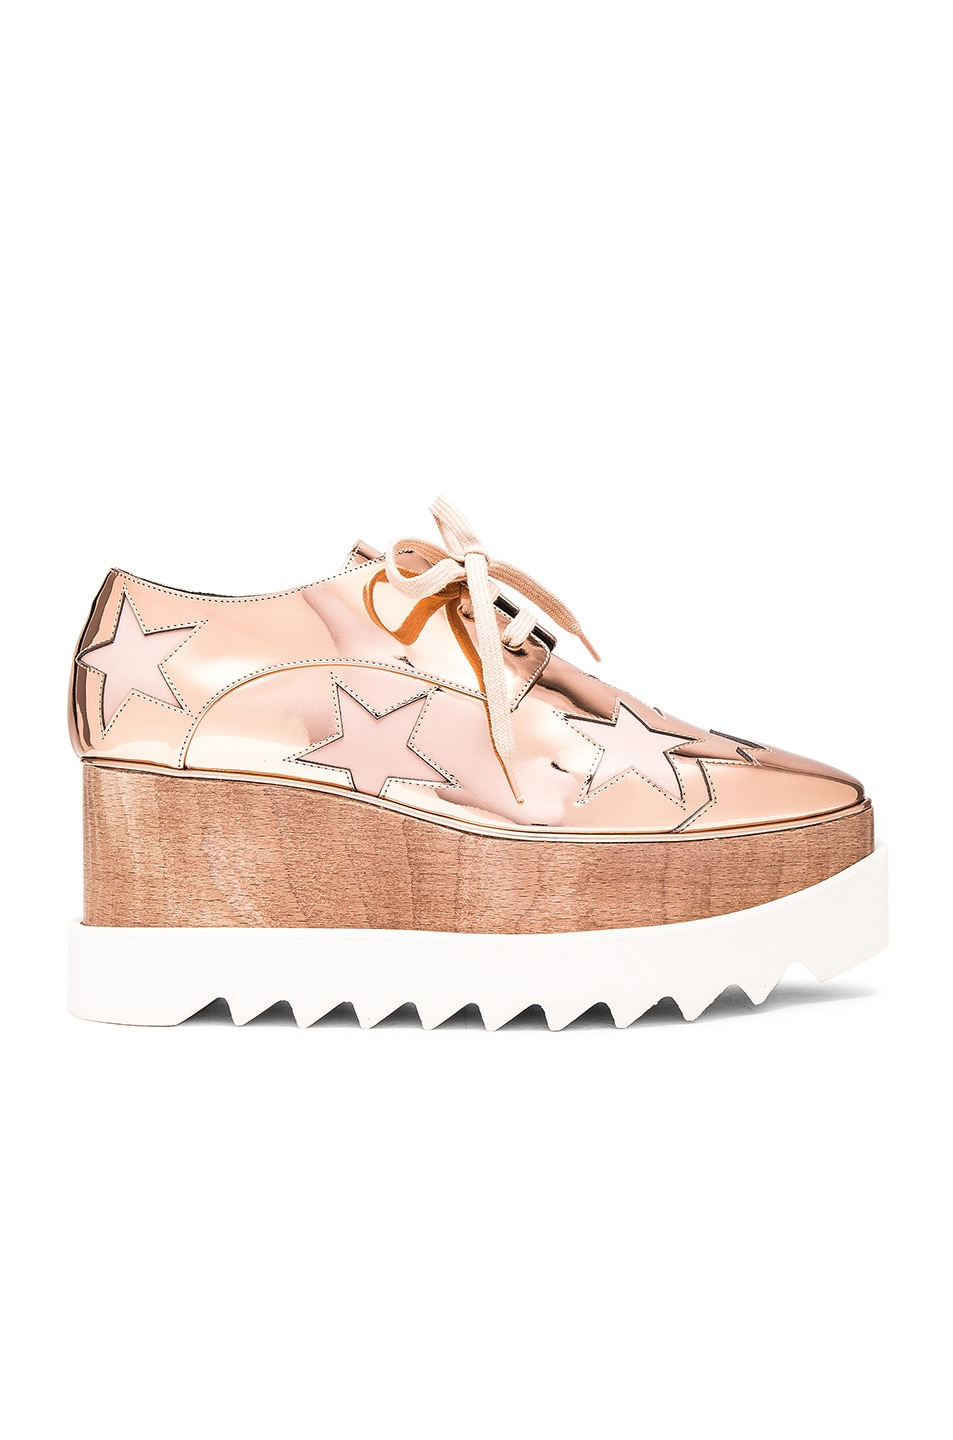 Stella McCartney Elyse Star Platform Shoes in Metallics,Geometric Print, .